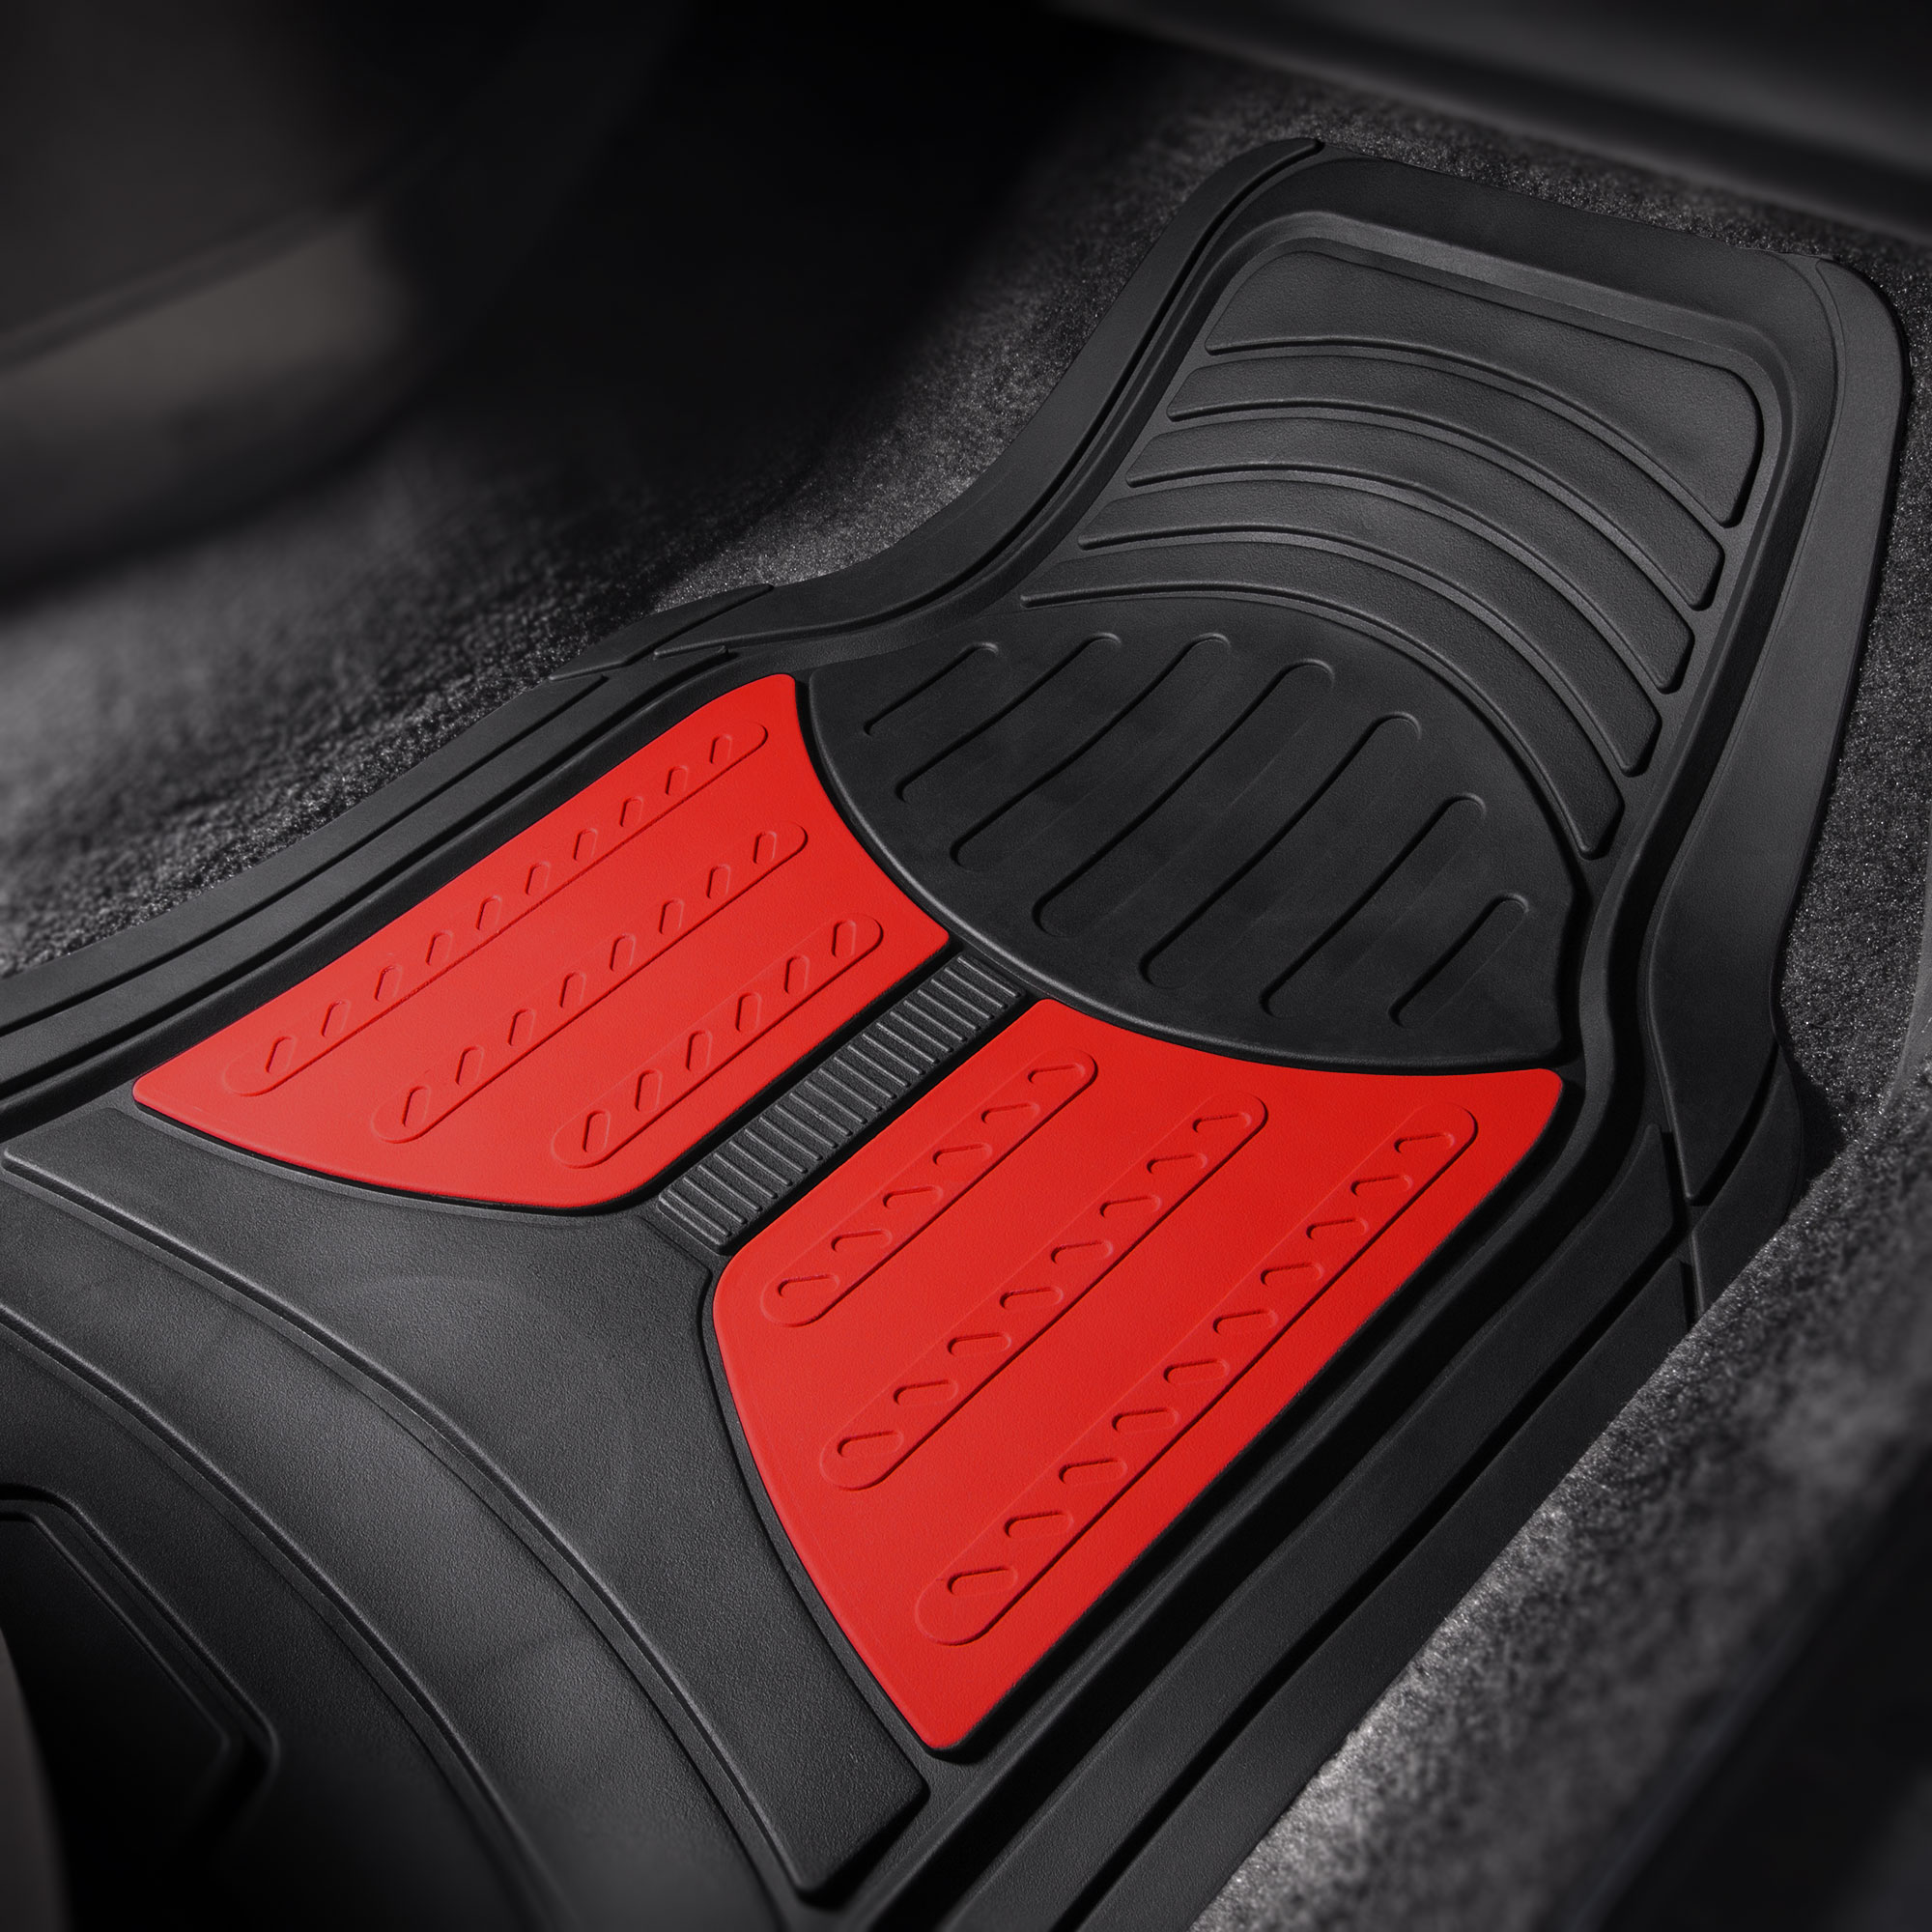 Car-Floor-Mats-for-All-Weather-Rubber-2-Tone-Design-4pc-Set-Heavy-Duty thumbnail 35